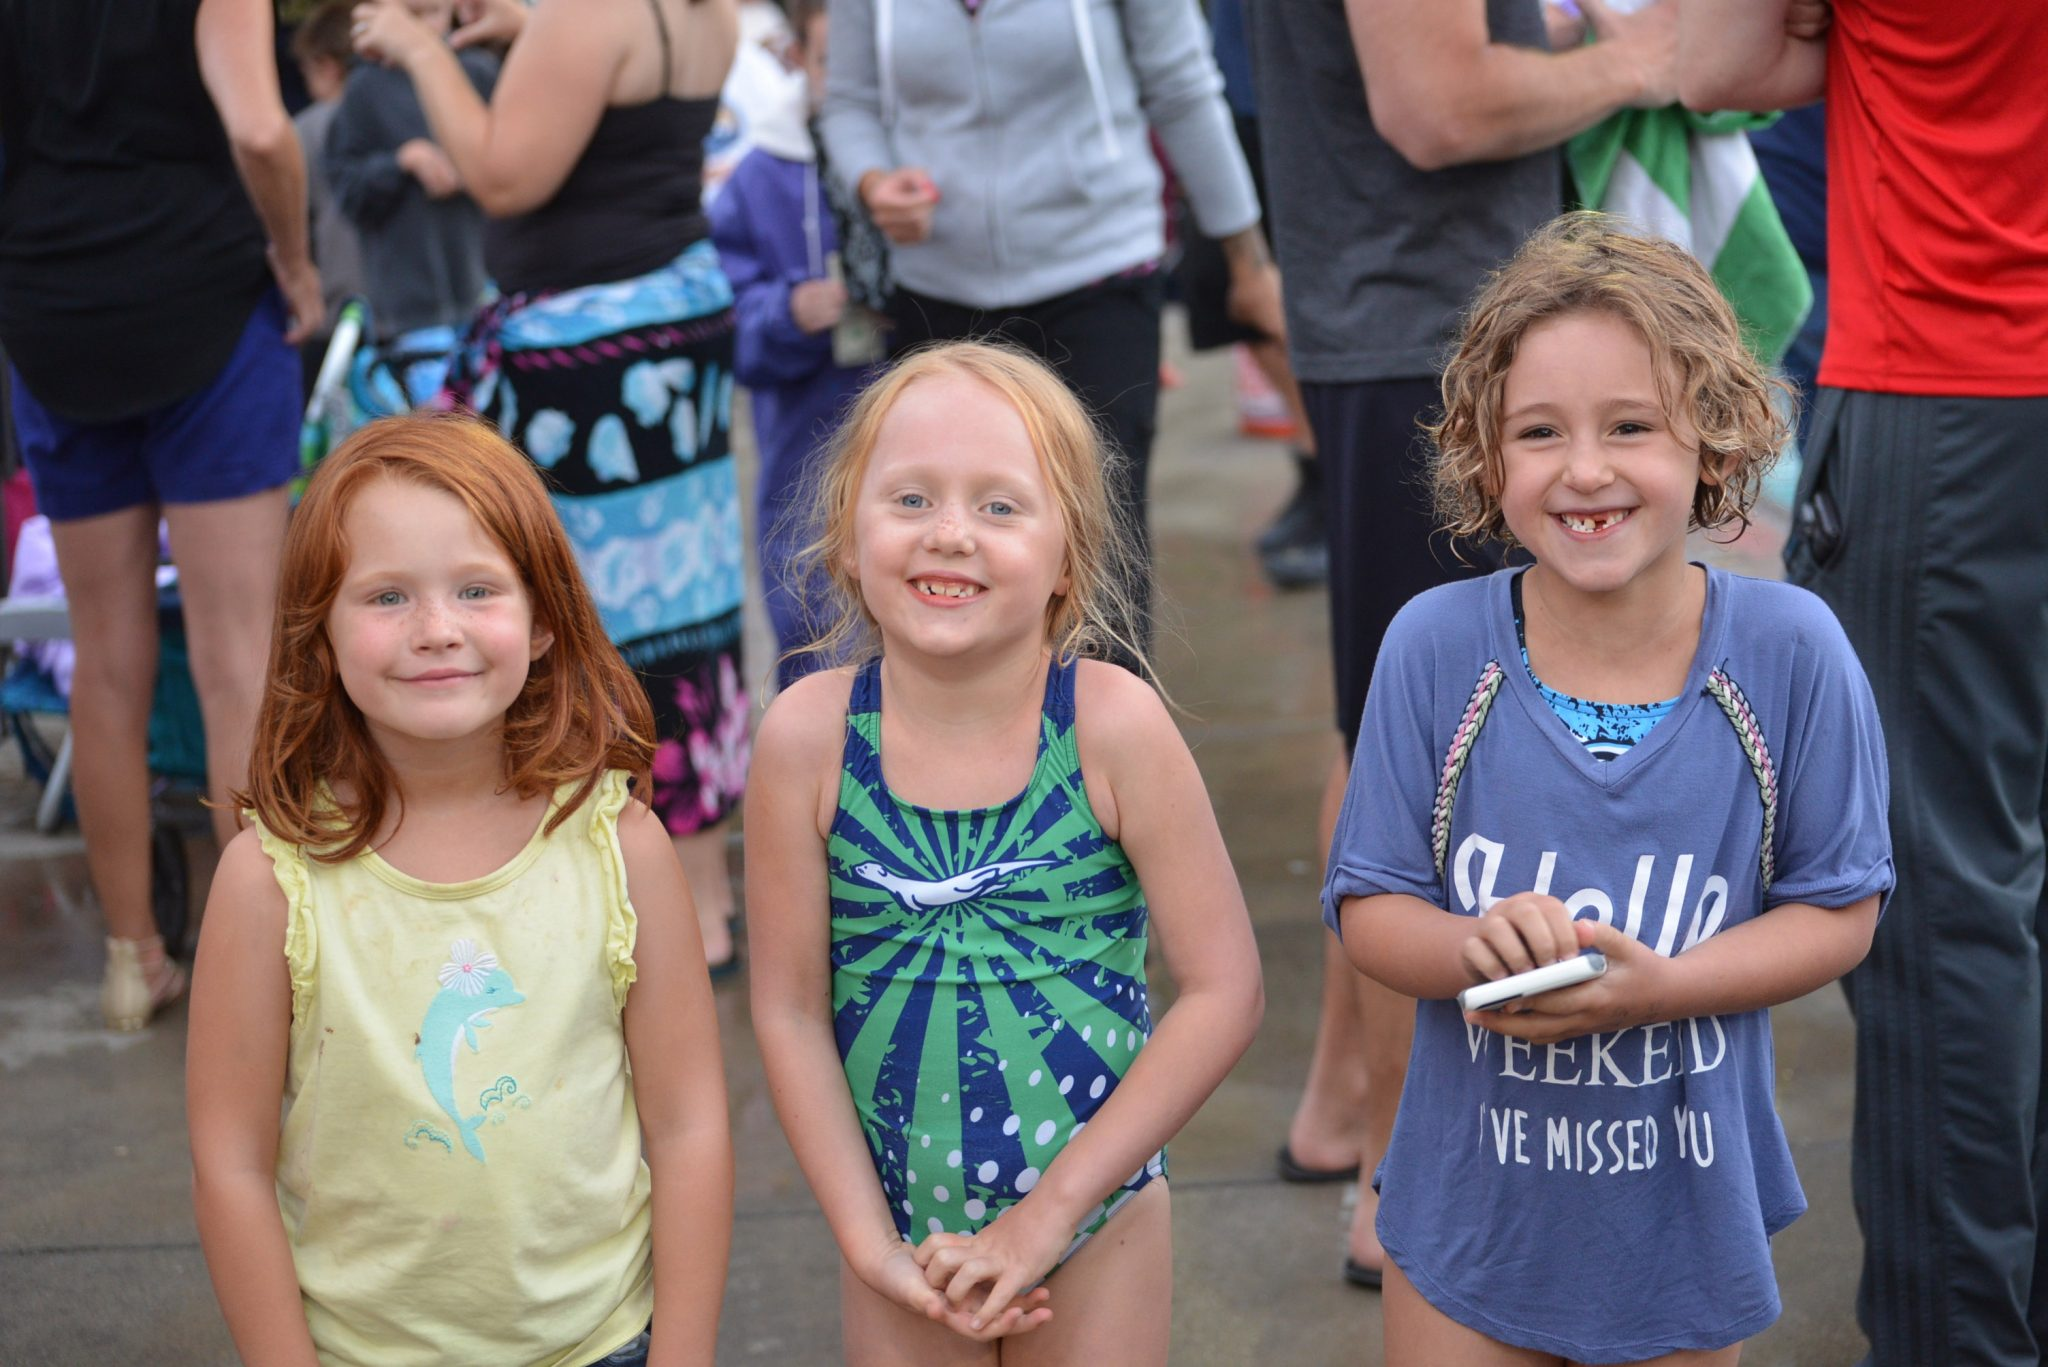 From left: Skyler Gately from Forest Hills, Maddie McKeown from MCST and Ella Cleland from Forest Hills find time to pose for the camera. (COURTESY / On File)